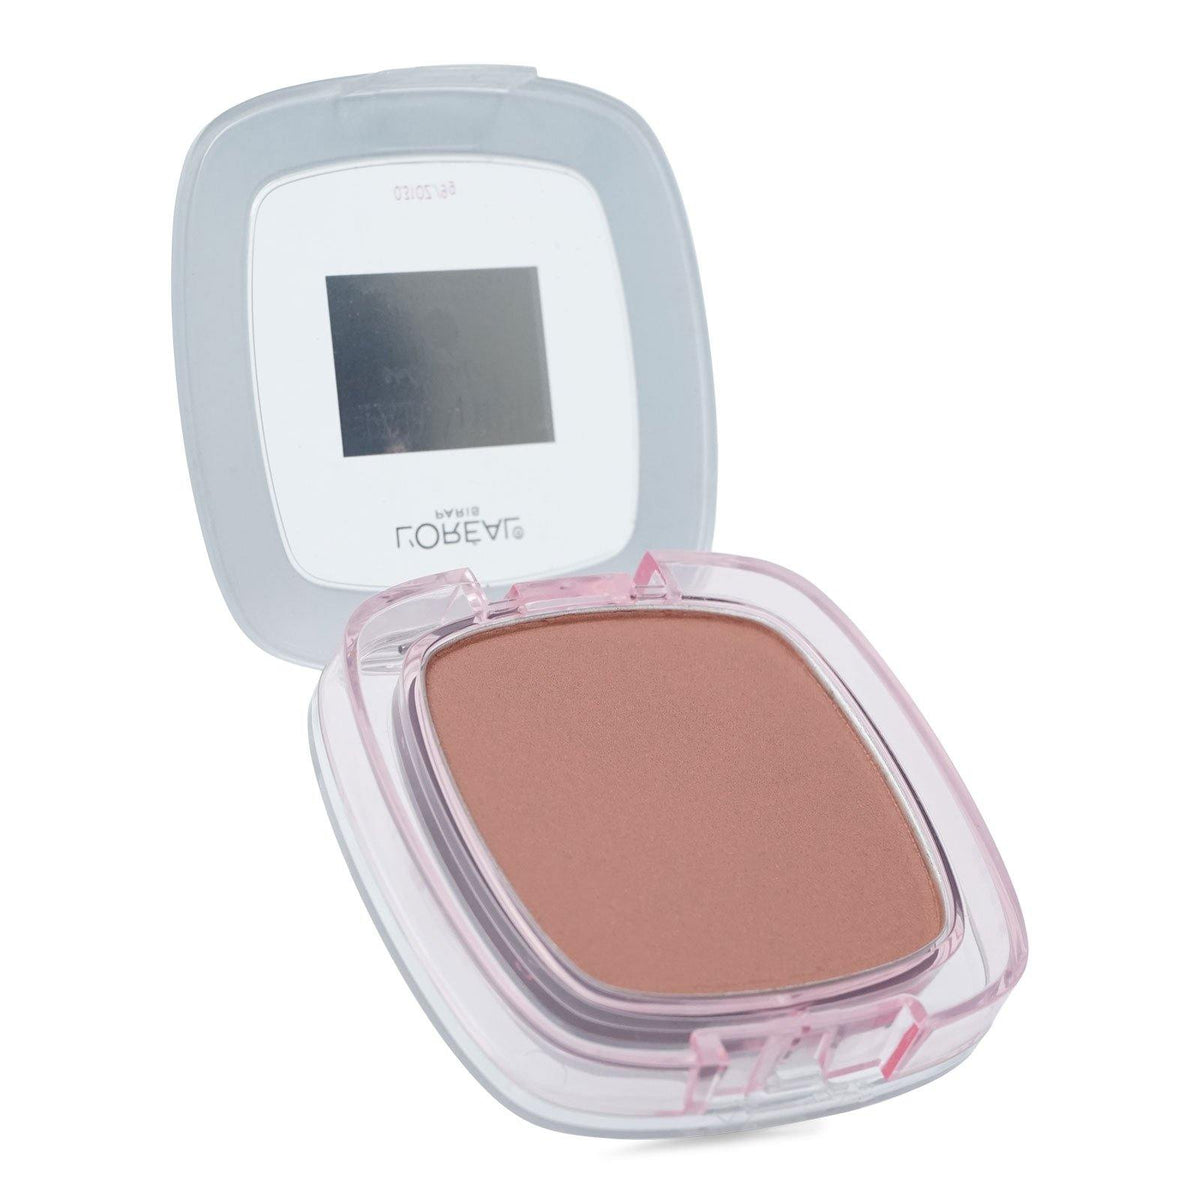 LOREAL PARADISE ENCHANTED BLUSH (24/cs)